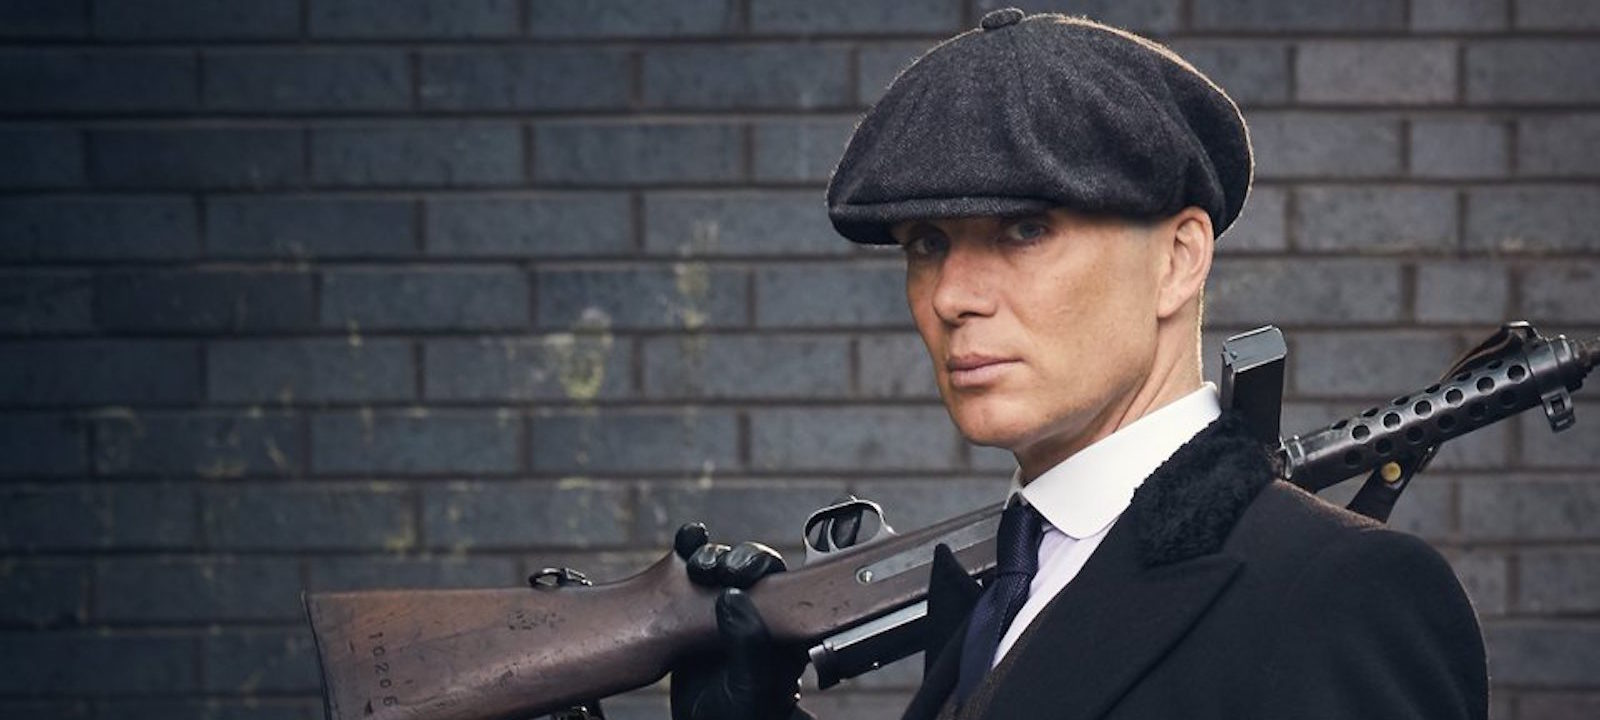 ef8e6d7a5fdc7 anglo 2000x1125 cillianmurphy peakyblinders s4.  anglo 2000x1125 cillianmurphy peakyblinders s4